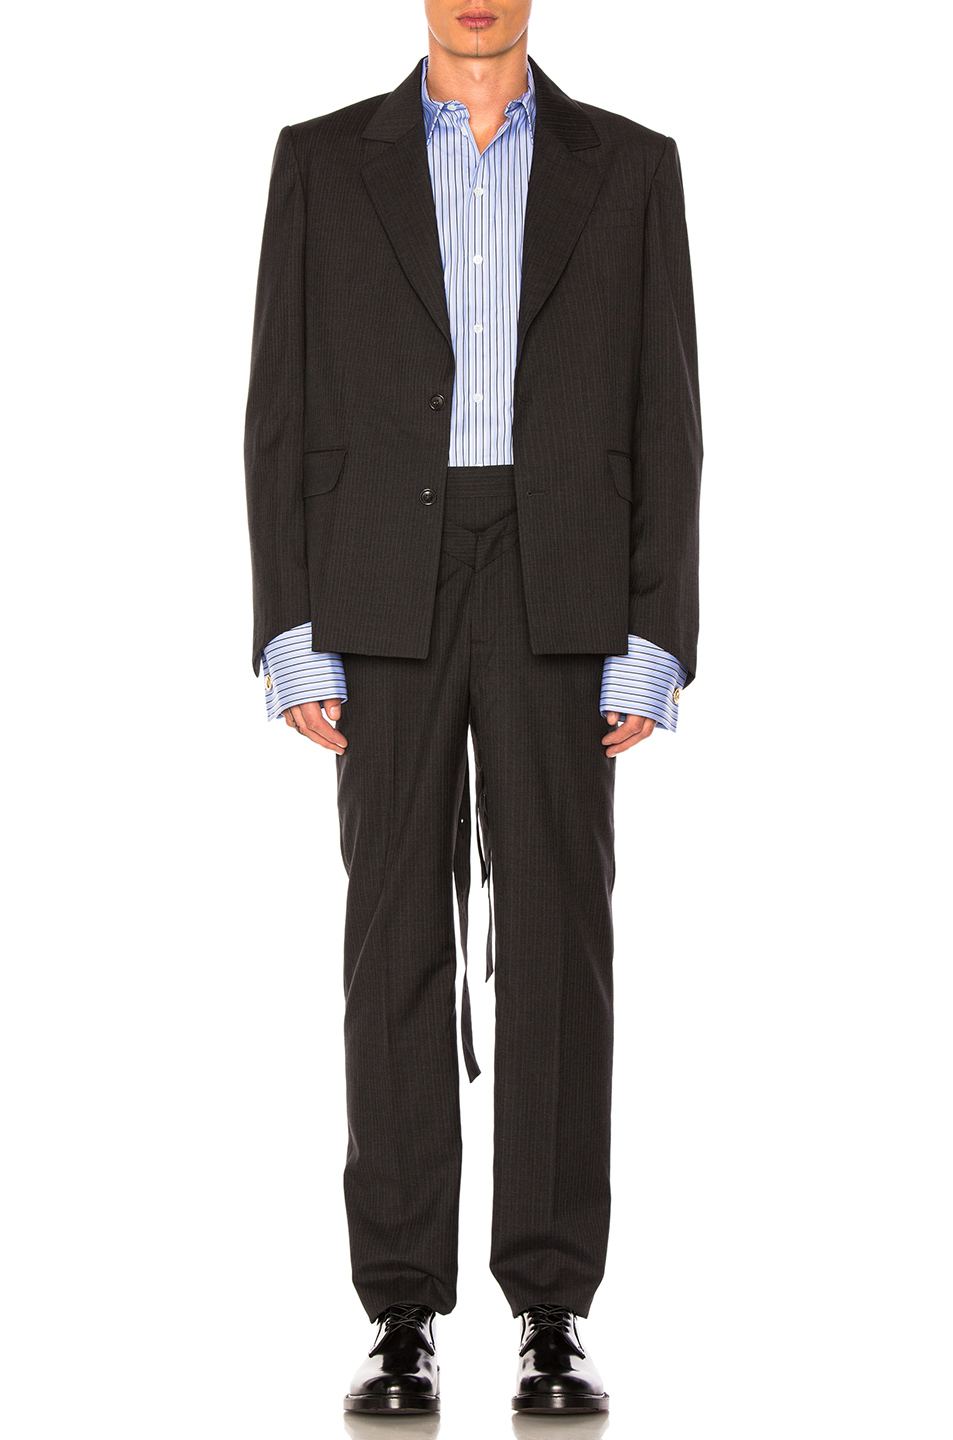 Photo of Y Project Blazer in Black,Stripes - shop Y Project menswear